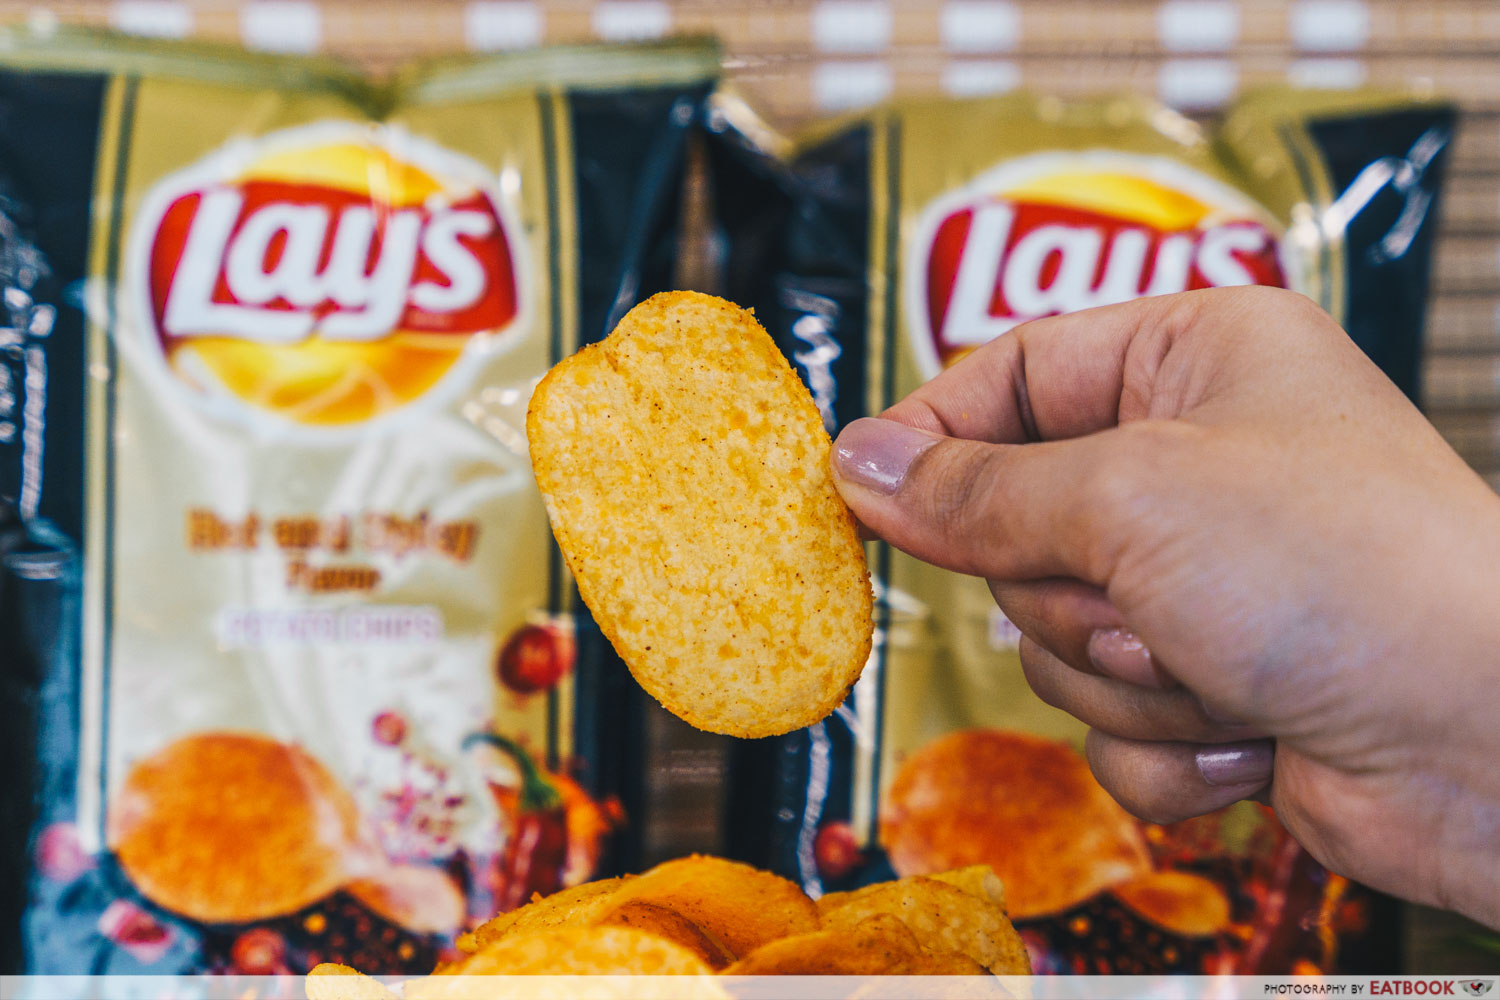 lay's potato chips - hot and spicy